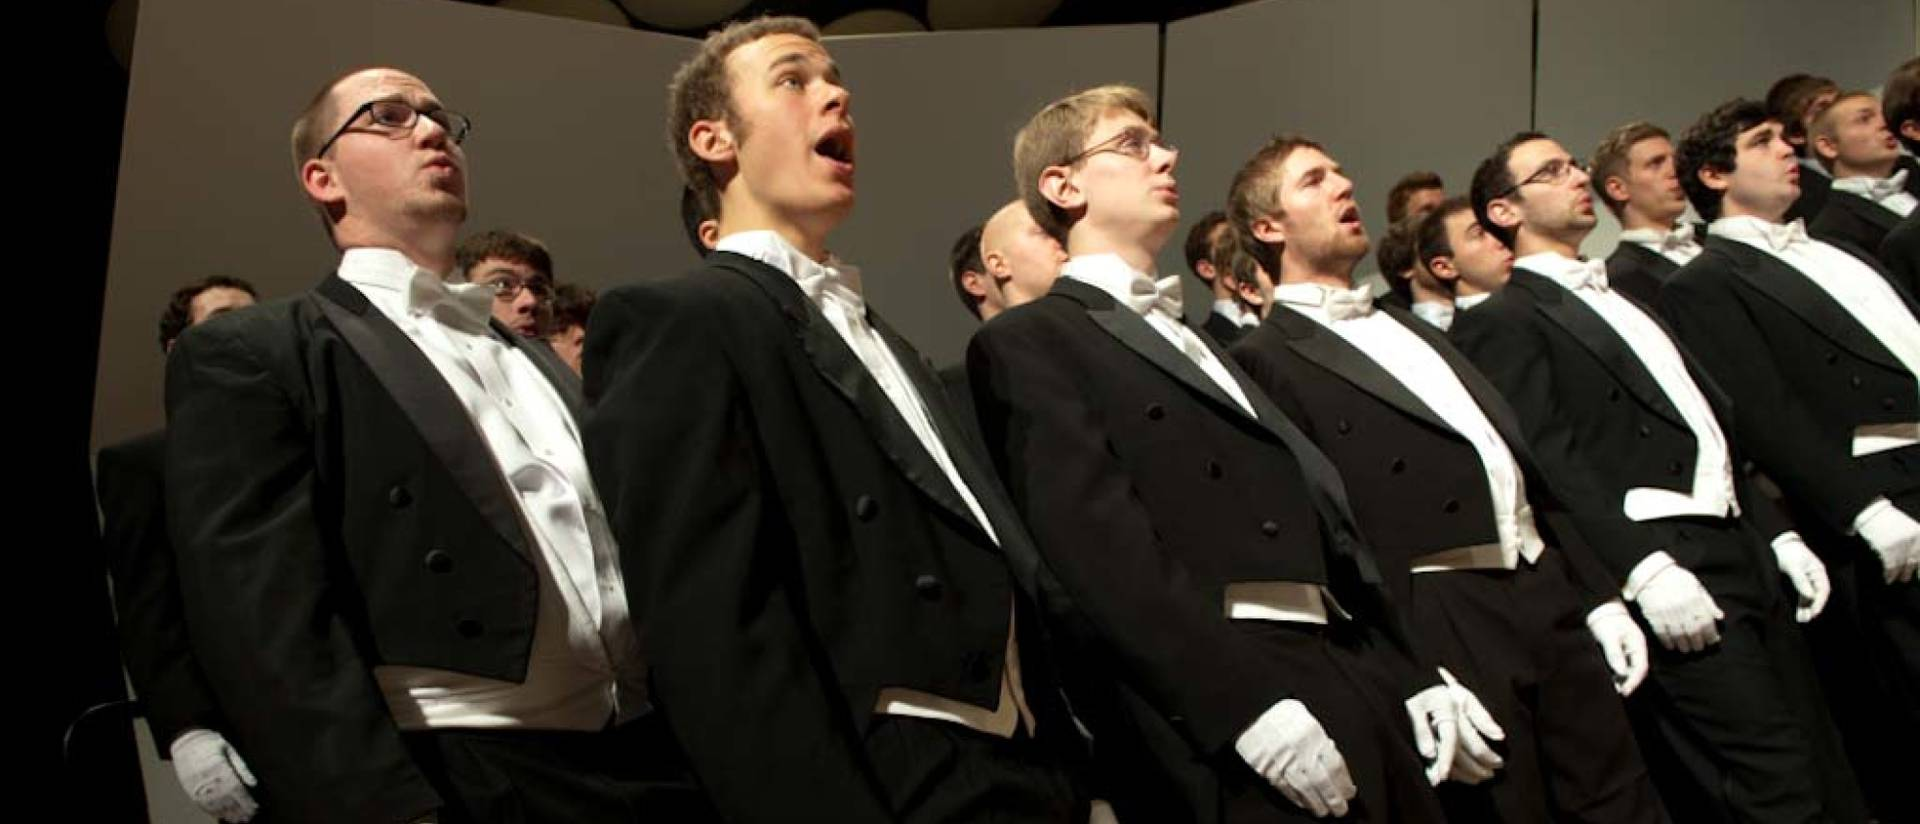 UW-Eau Claire Singing Statesmen perform